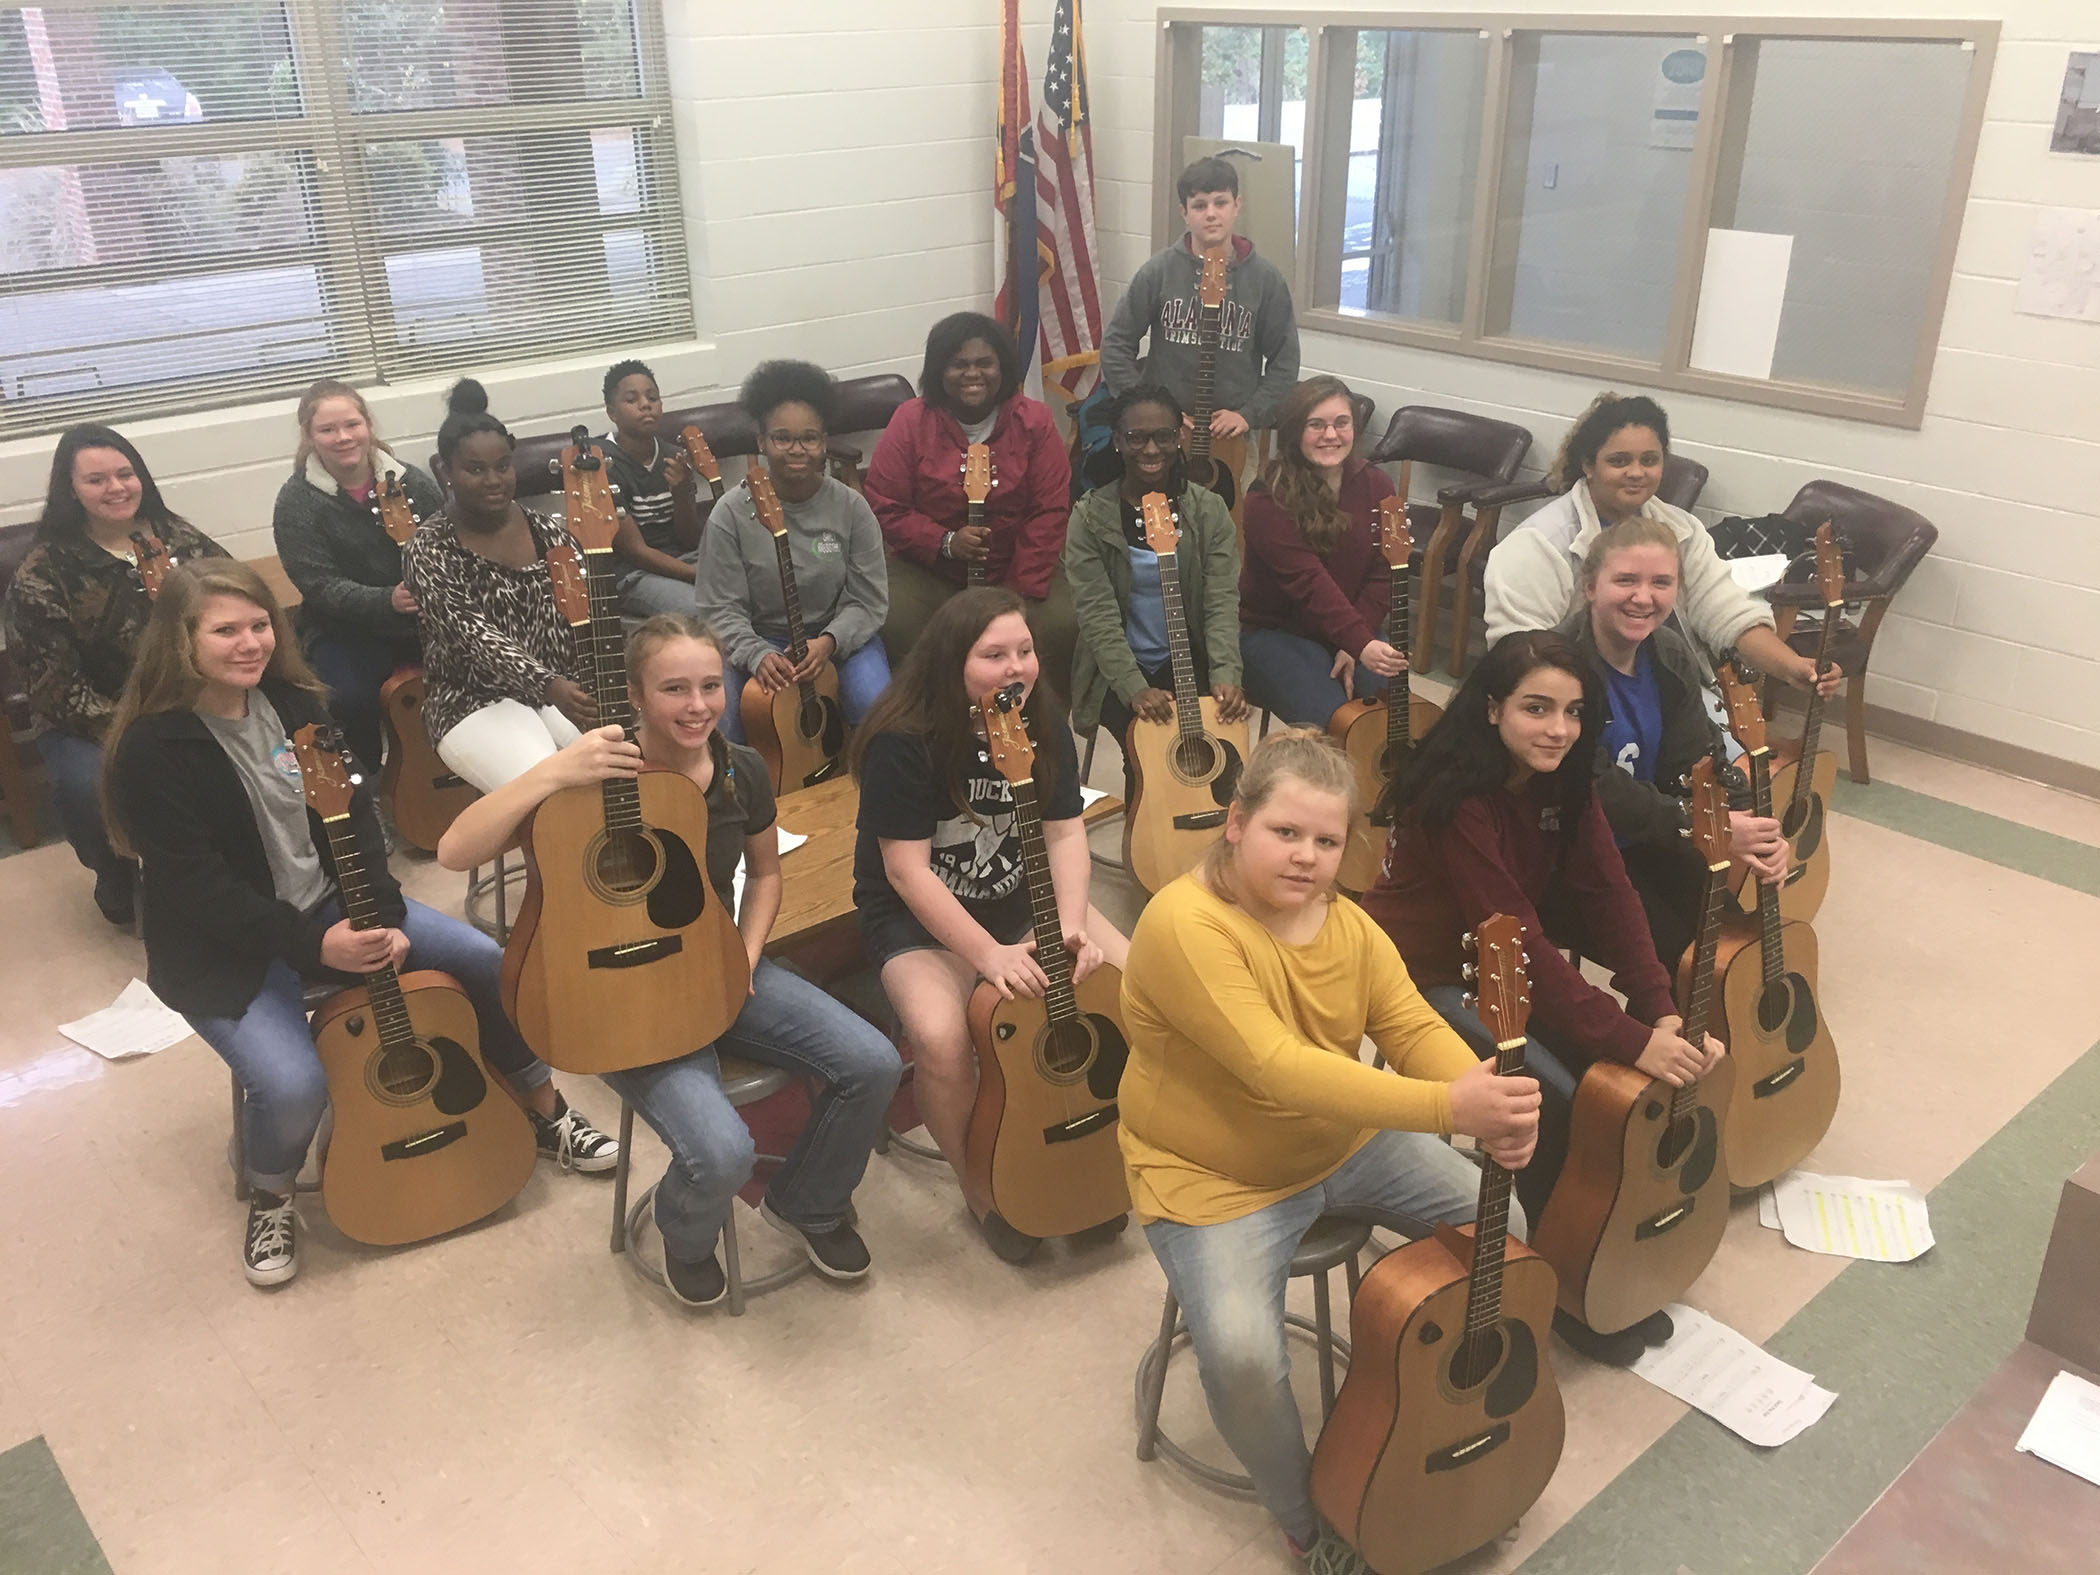 Quitman Junior High guitar students pose for a photo in the QJH office.